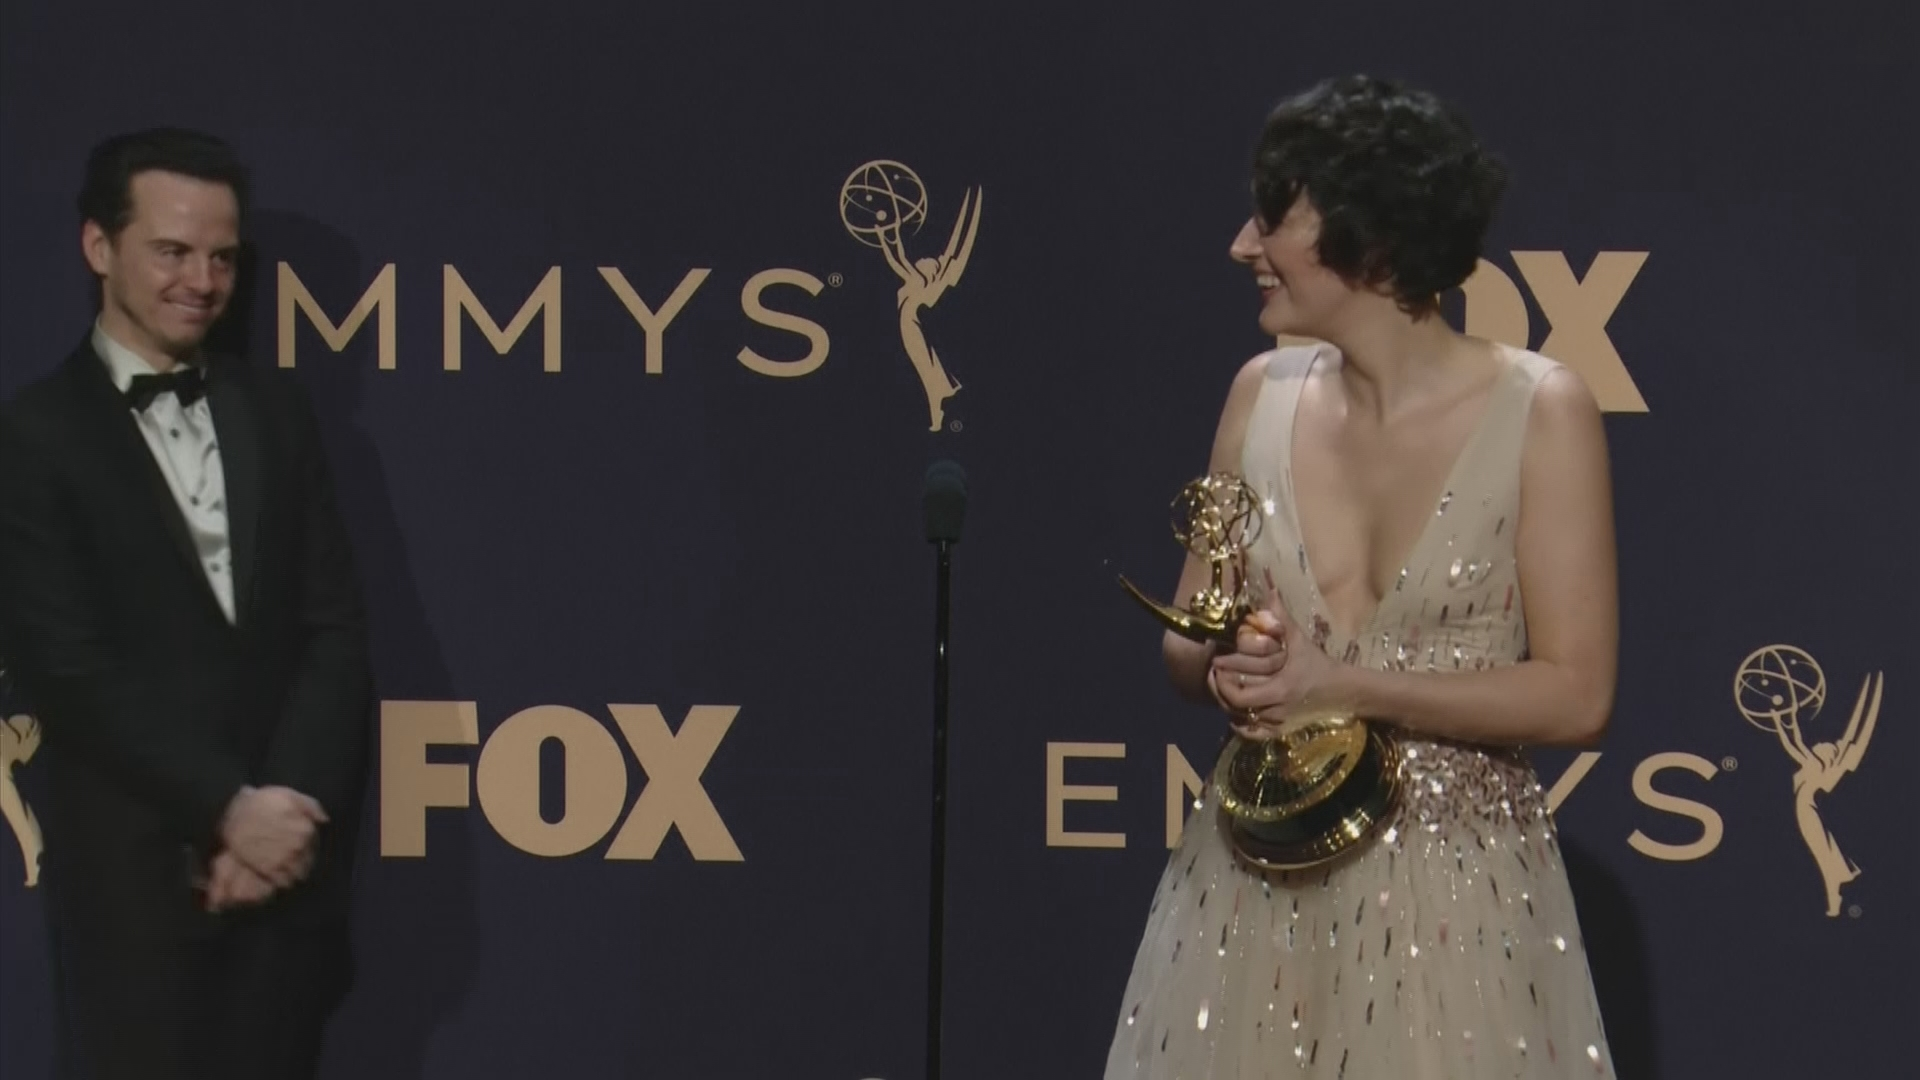 Emmys 2019: 8 Amazing Moments From This Year's Awards Show